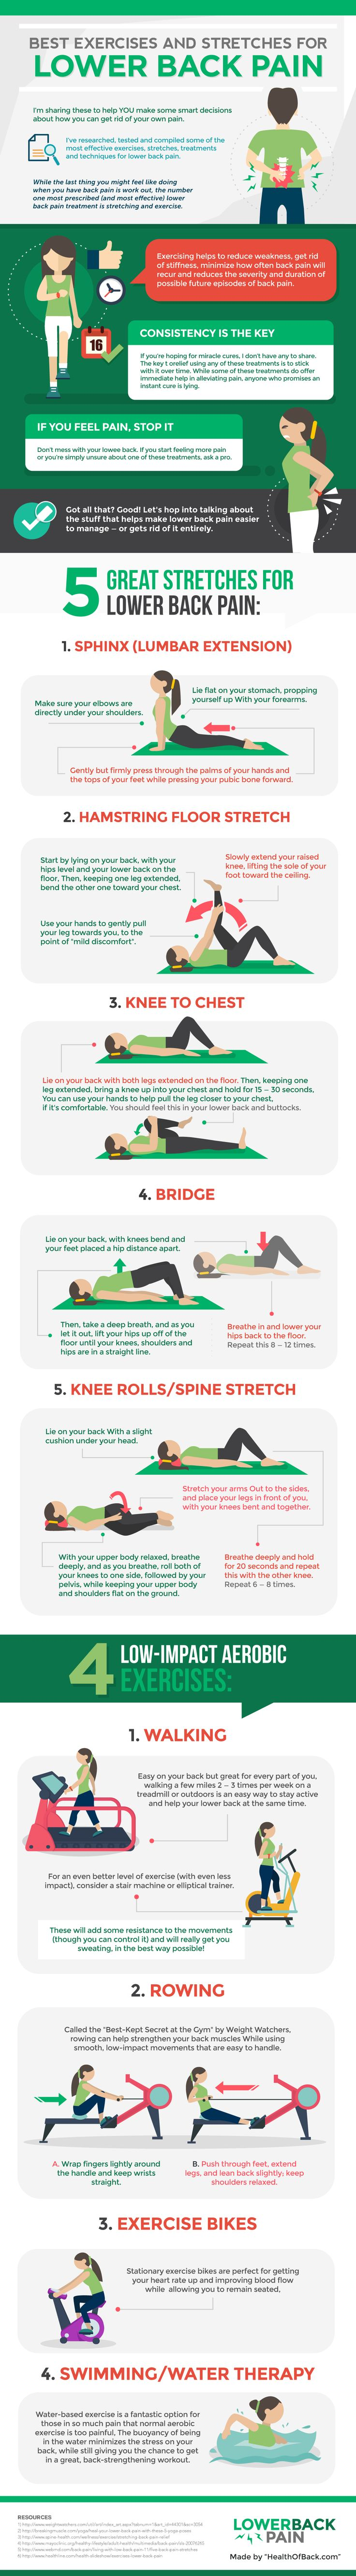 9 Best Exercises and Stretches for Lower Back Pain [infographic]